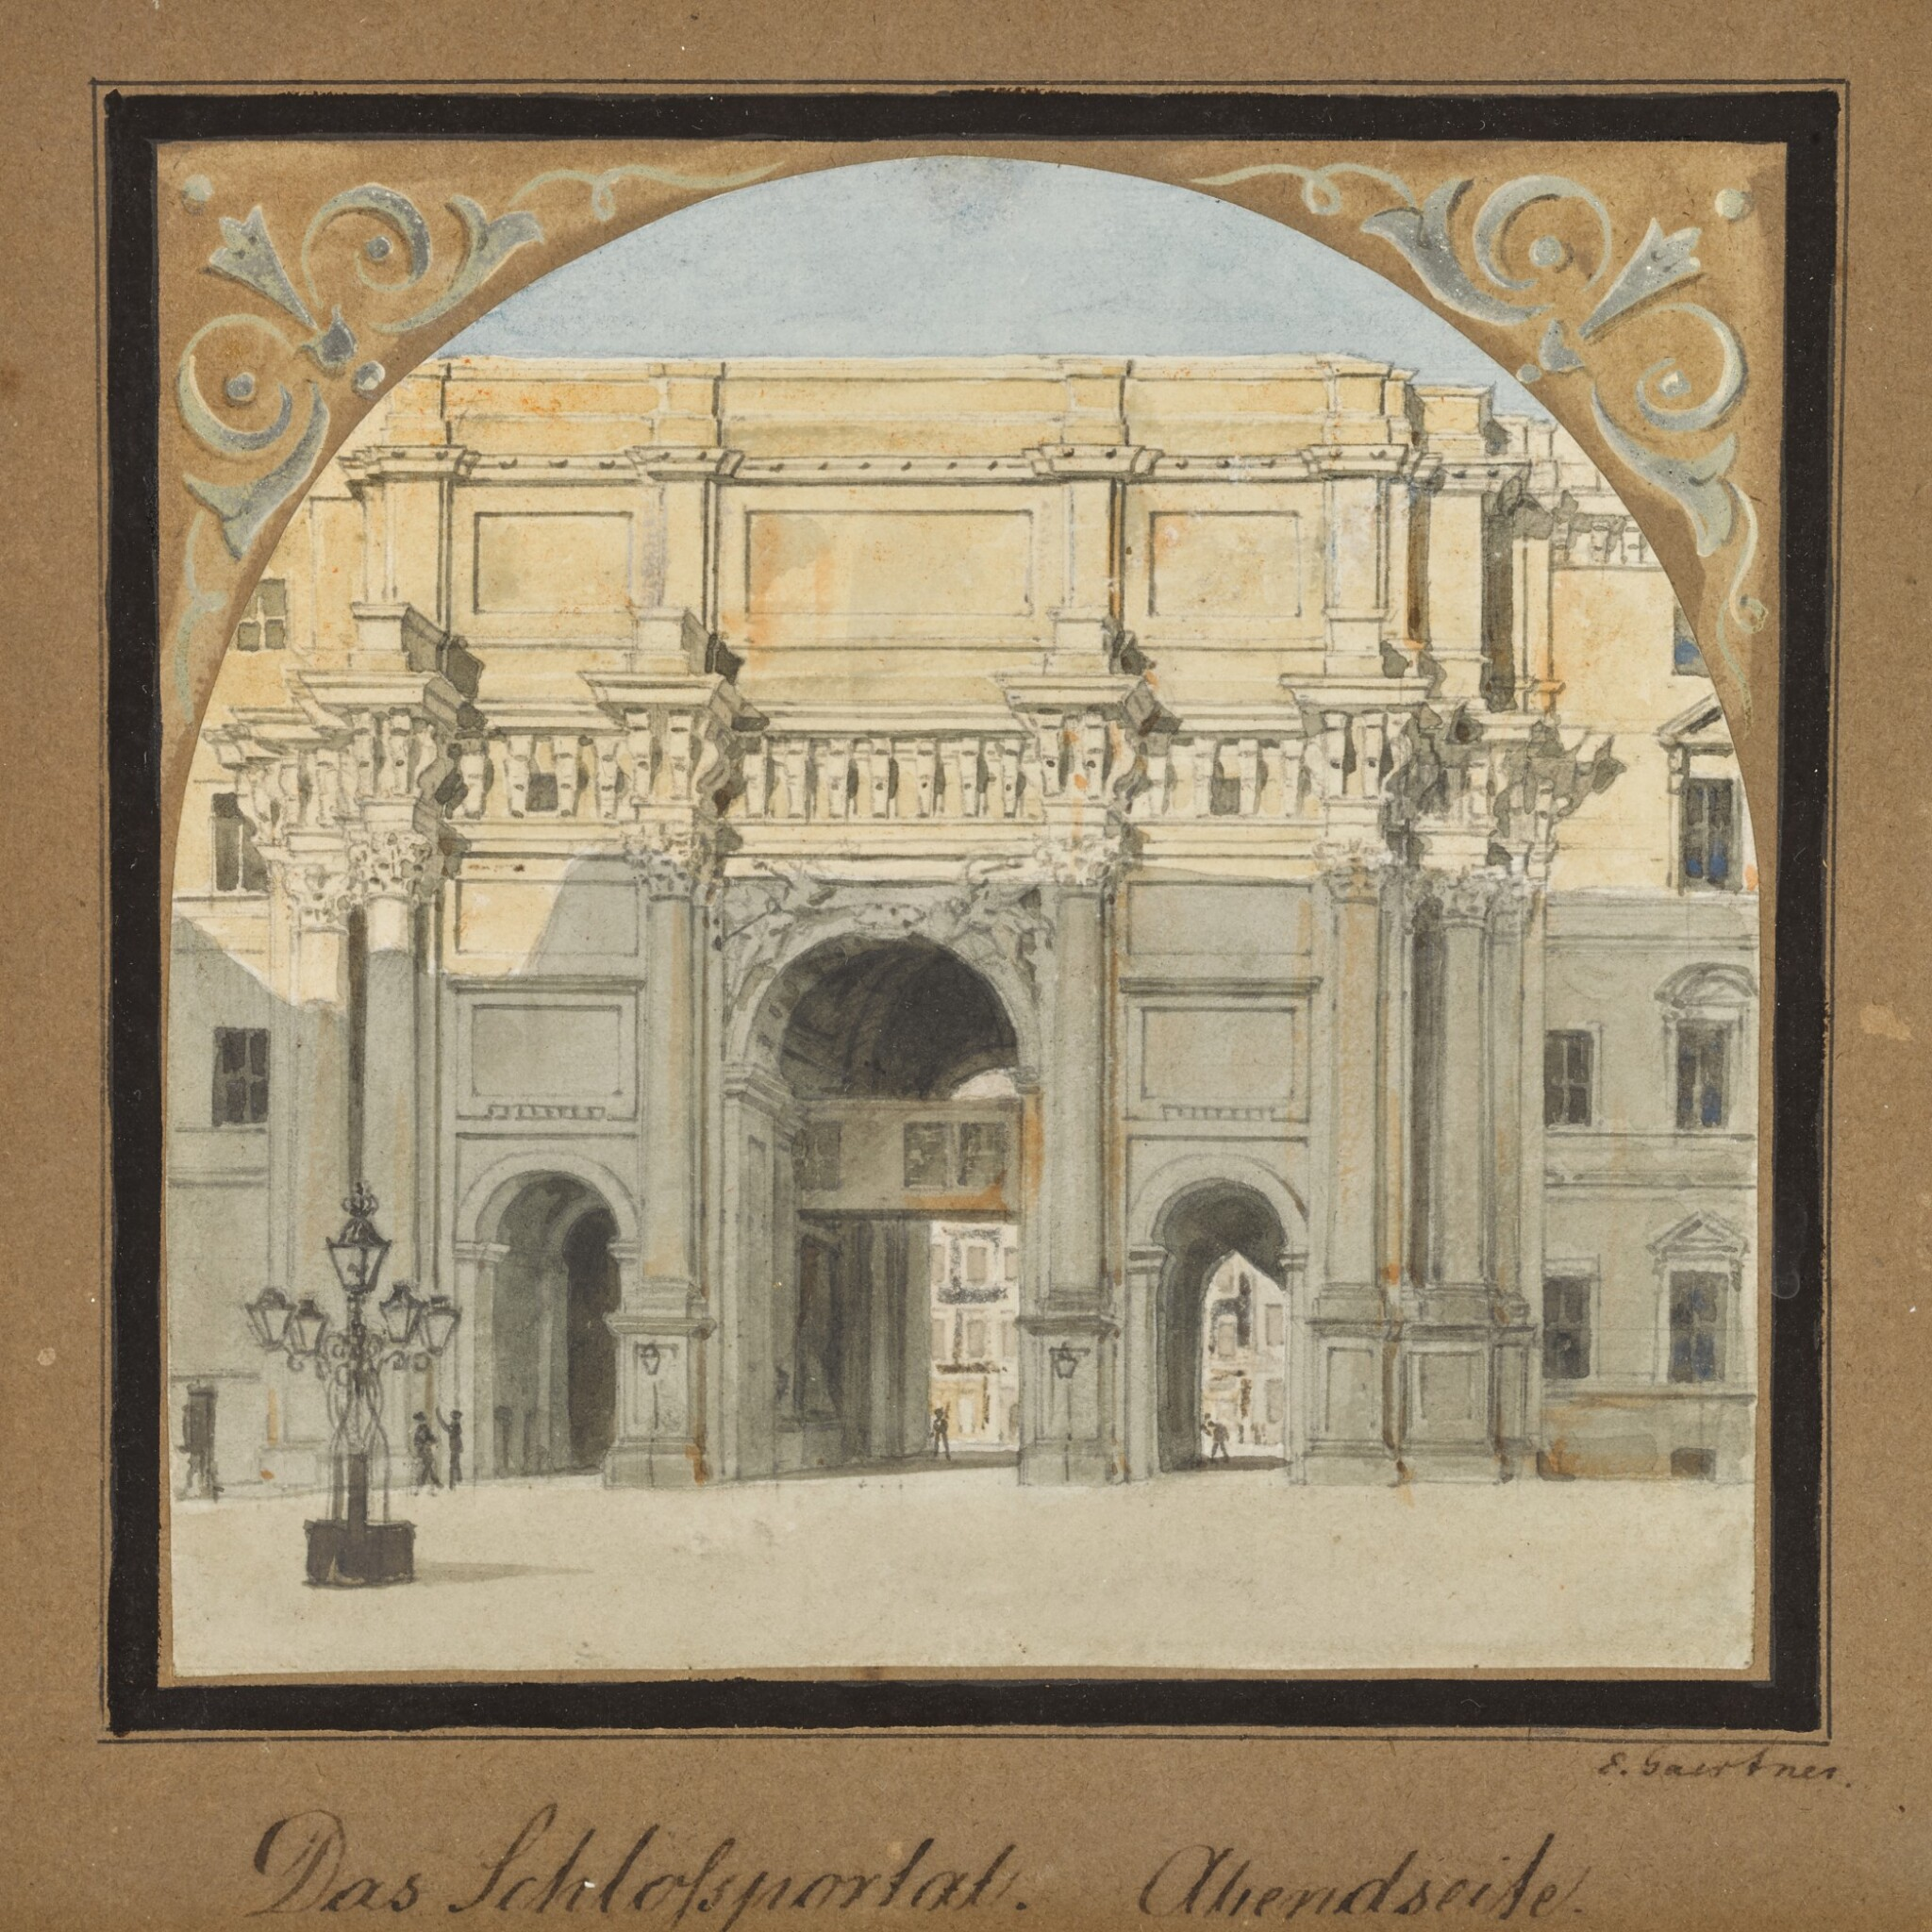 View 1 of Lot 69. Das Schloßportal, Abendseite (West elevation of the Palace Gate).